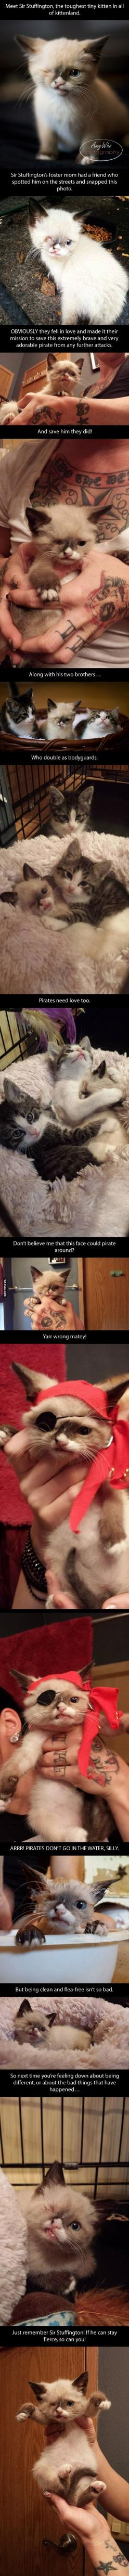 :): Cutest Pirate, Guy, Pirate Kitten, Animal, Cat Lady